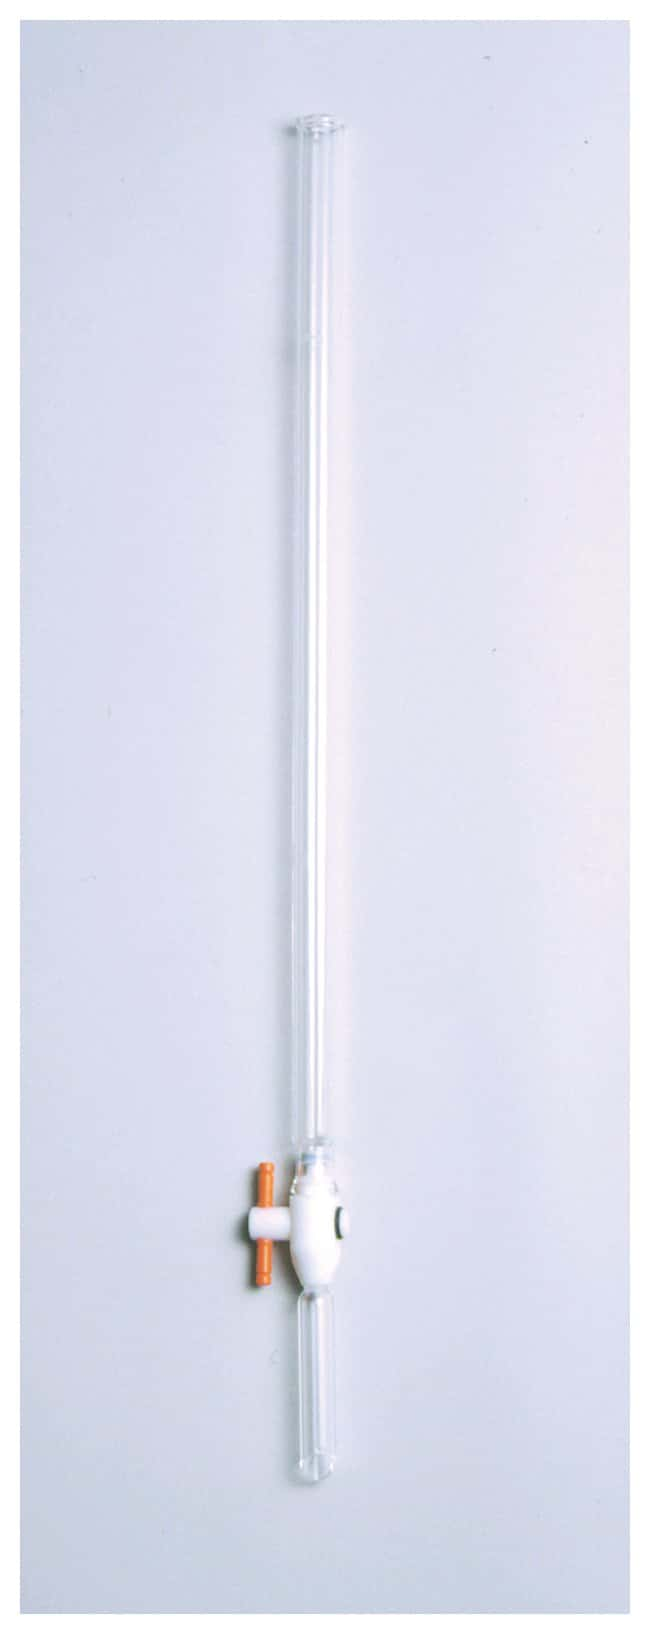 DWK Life Sciences Kimble™ KIMAX™ Brand Chromatography Column I.D.: 22mm; Length: 500mm; Capacity: 200mL DWK Life Sciences Kimble™ KIMAX™ Brand Chromatography Column